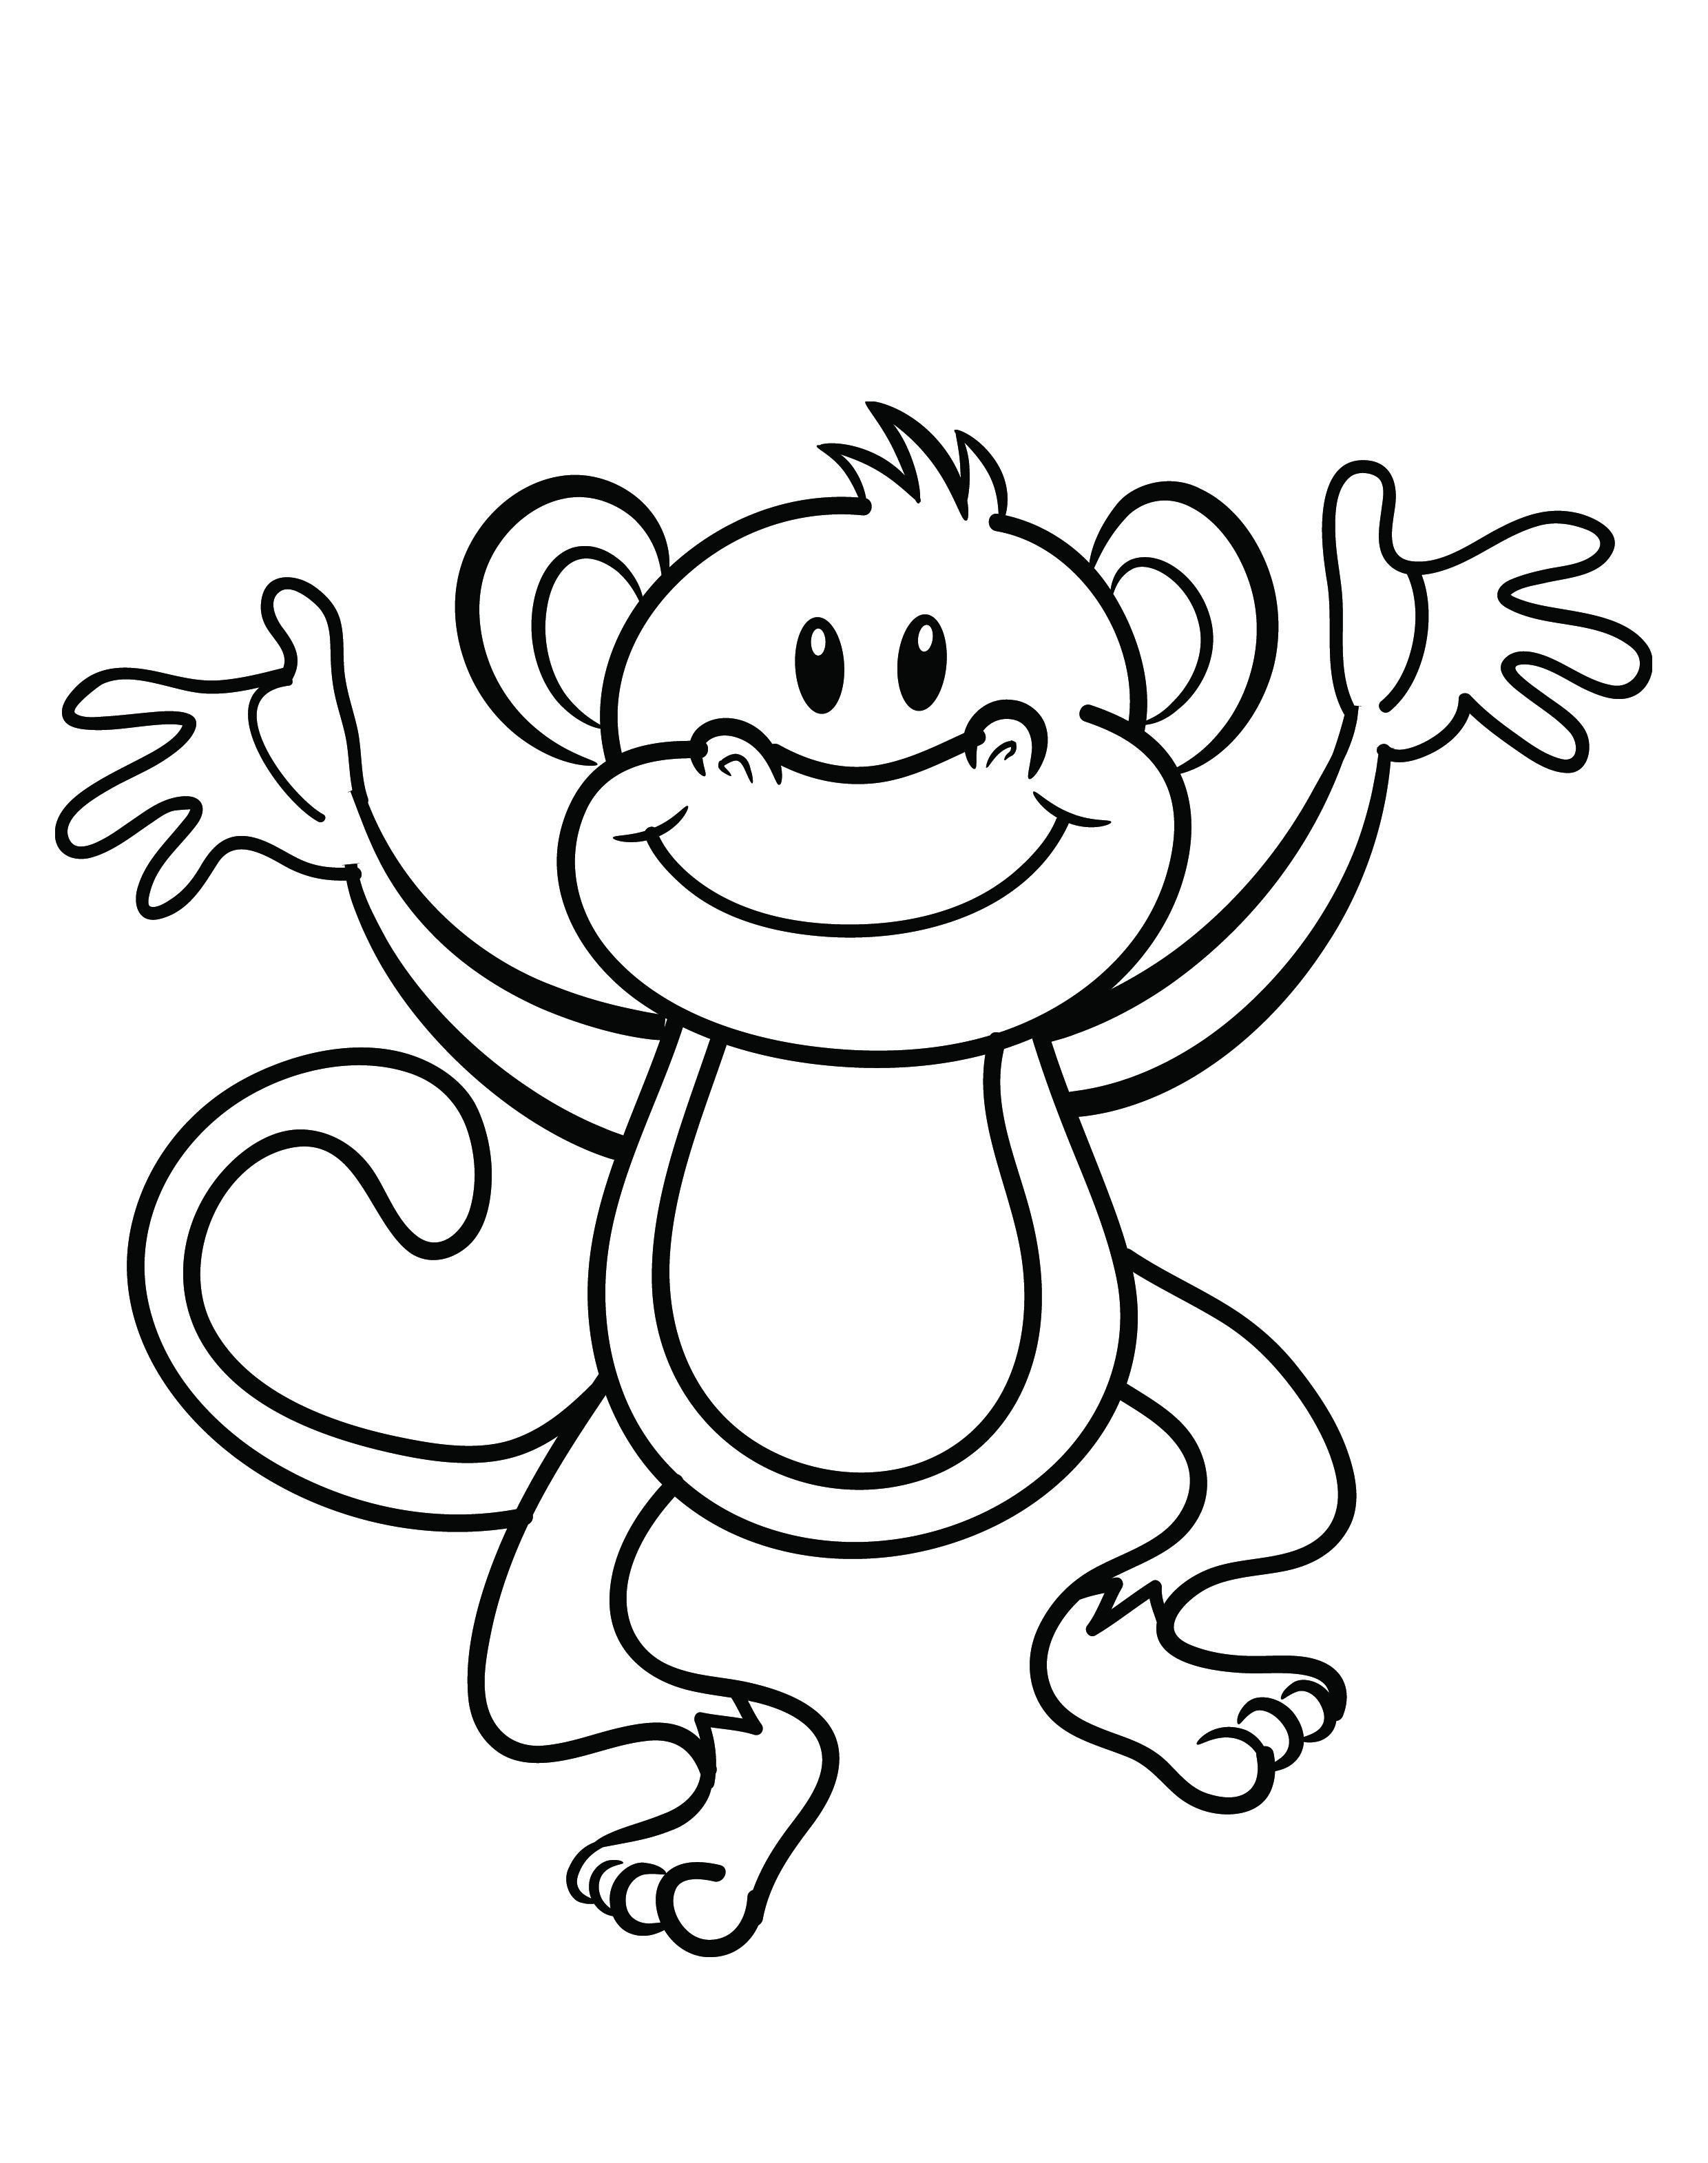 monkey coloring pictures get this cute monkey coloring pages for kids 60318 monkey pictures coloring